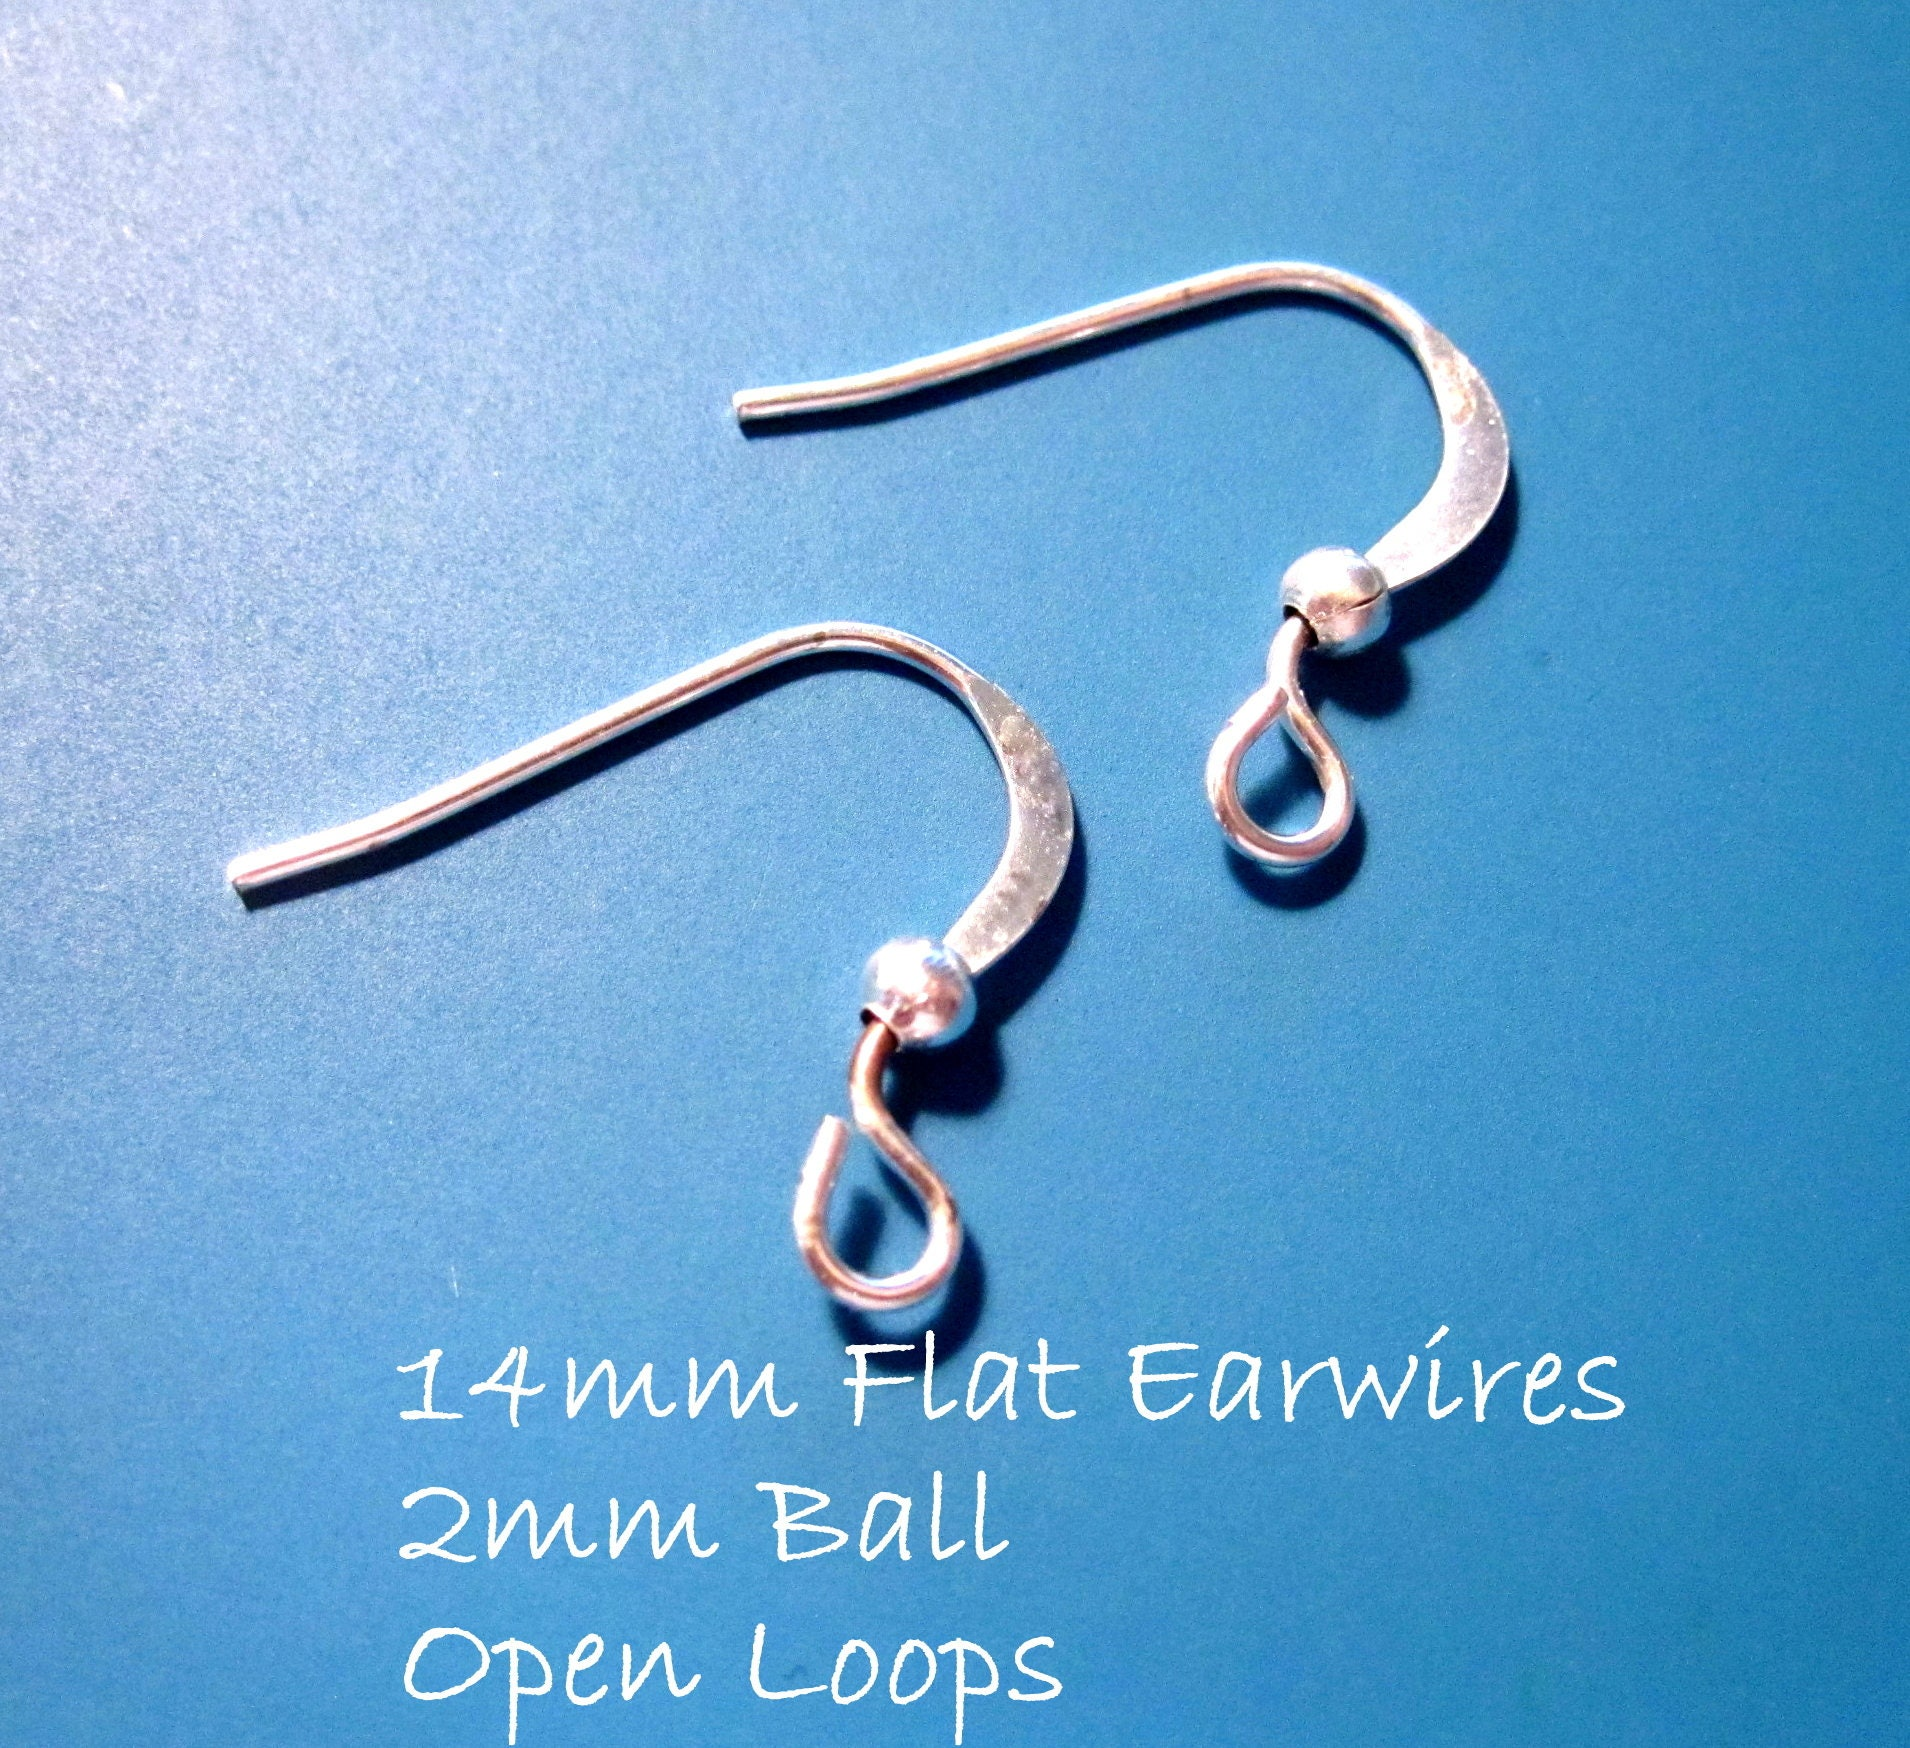 Bright Silver 14mm Earwires Flattened featuring a 2mm ball and open ...